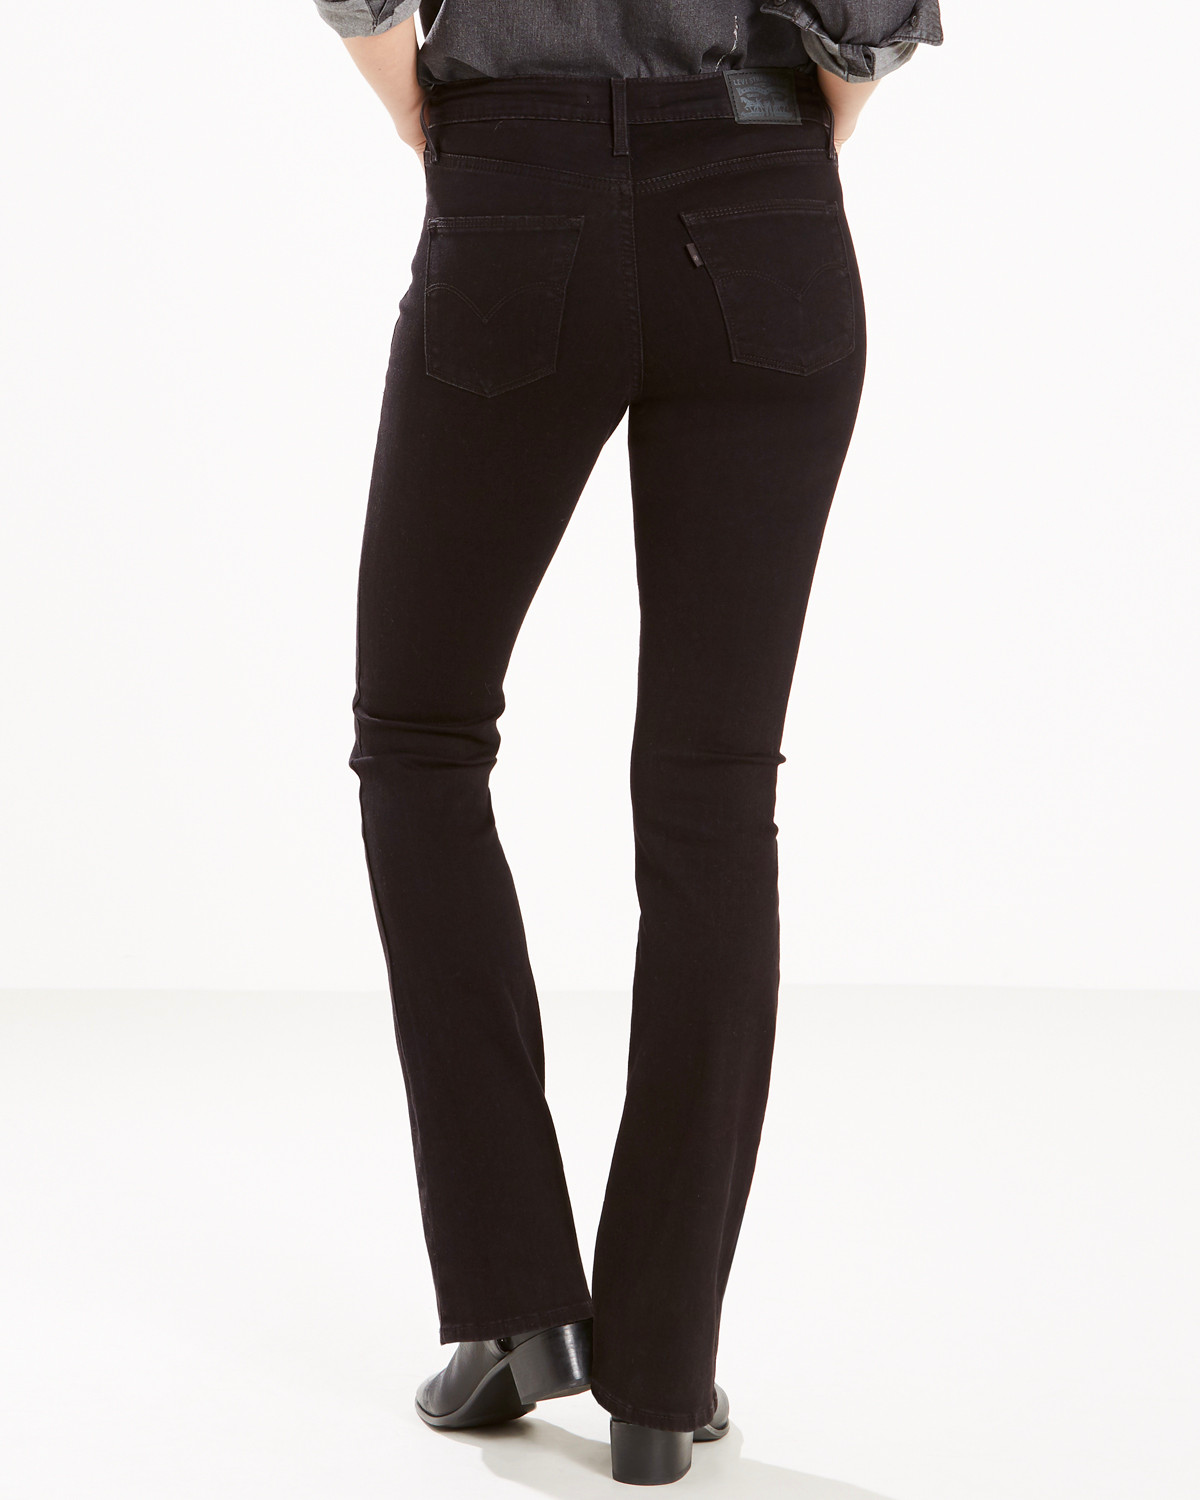 Leviu0026#39;s Womenu0026#39;s Black Slimming Mid-Rise Jeans - Boot Cut - Country Outfitter